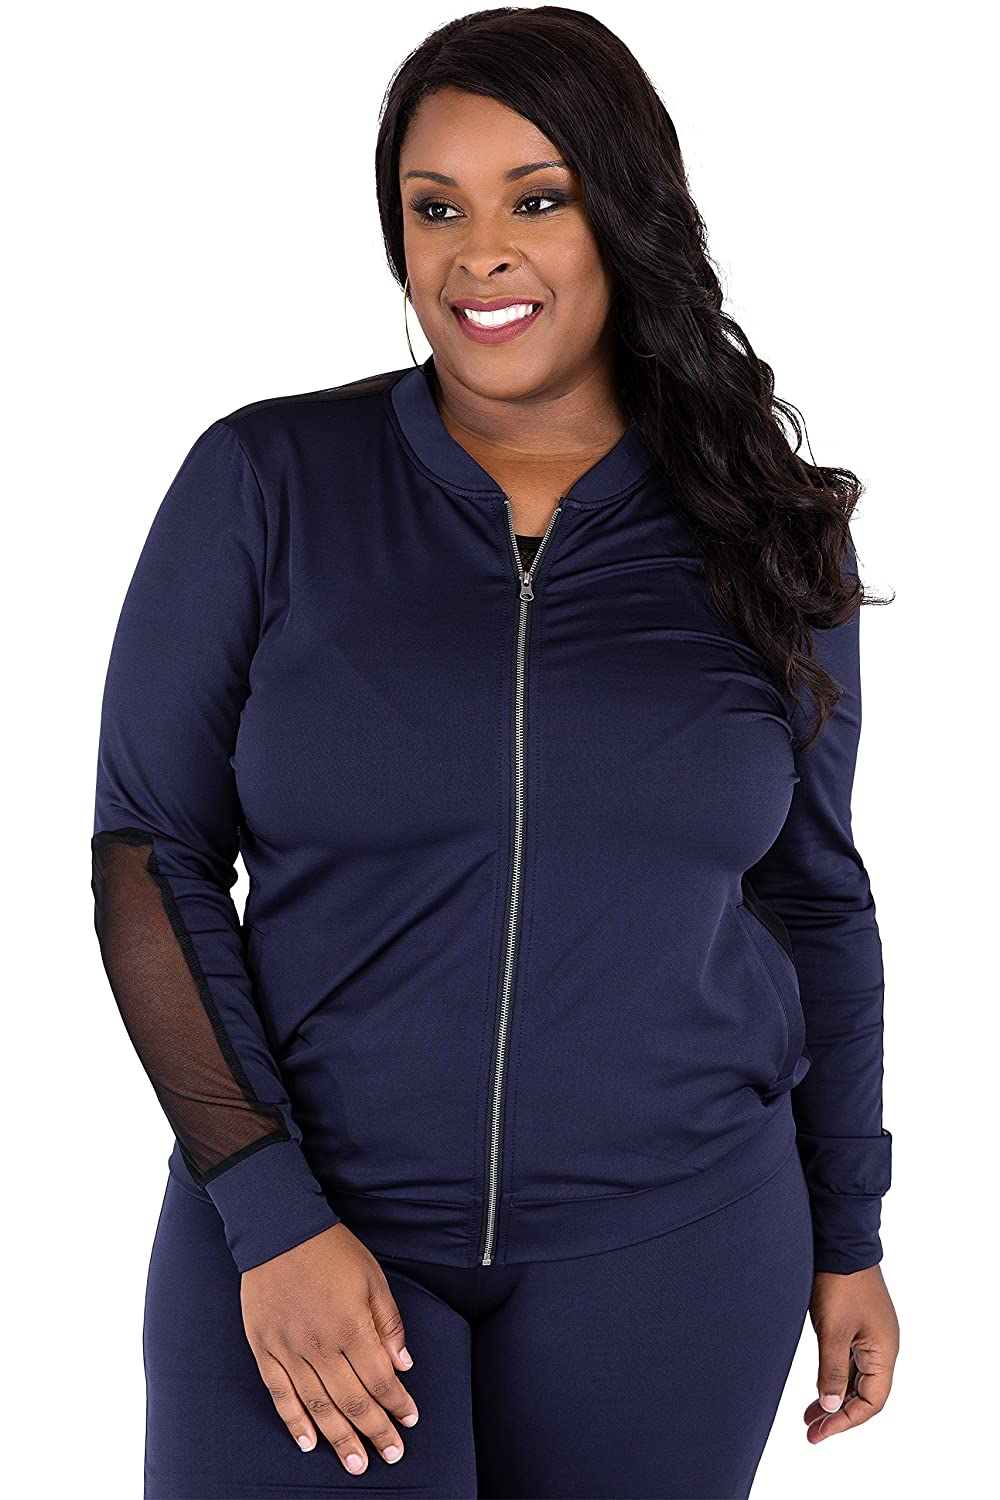 703fb55621c Poetic Justice Plus Size Curvy Women s Navy Zip Up Activewear Tracksuit Jacket  Size 1X at Amazon Women s Clothing store